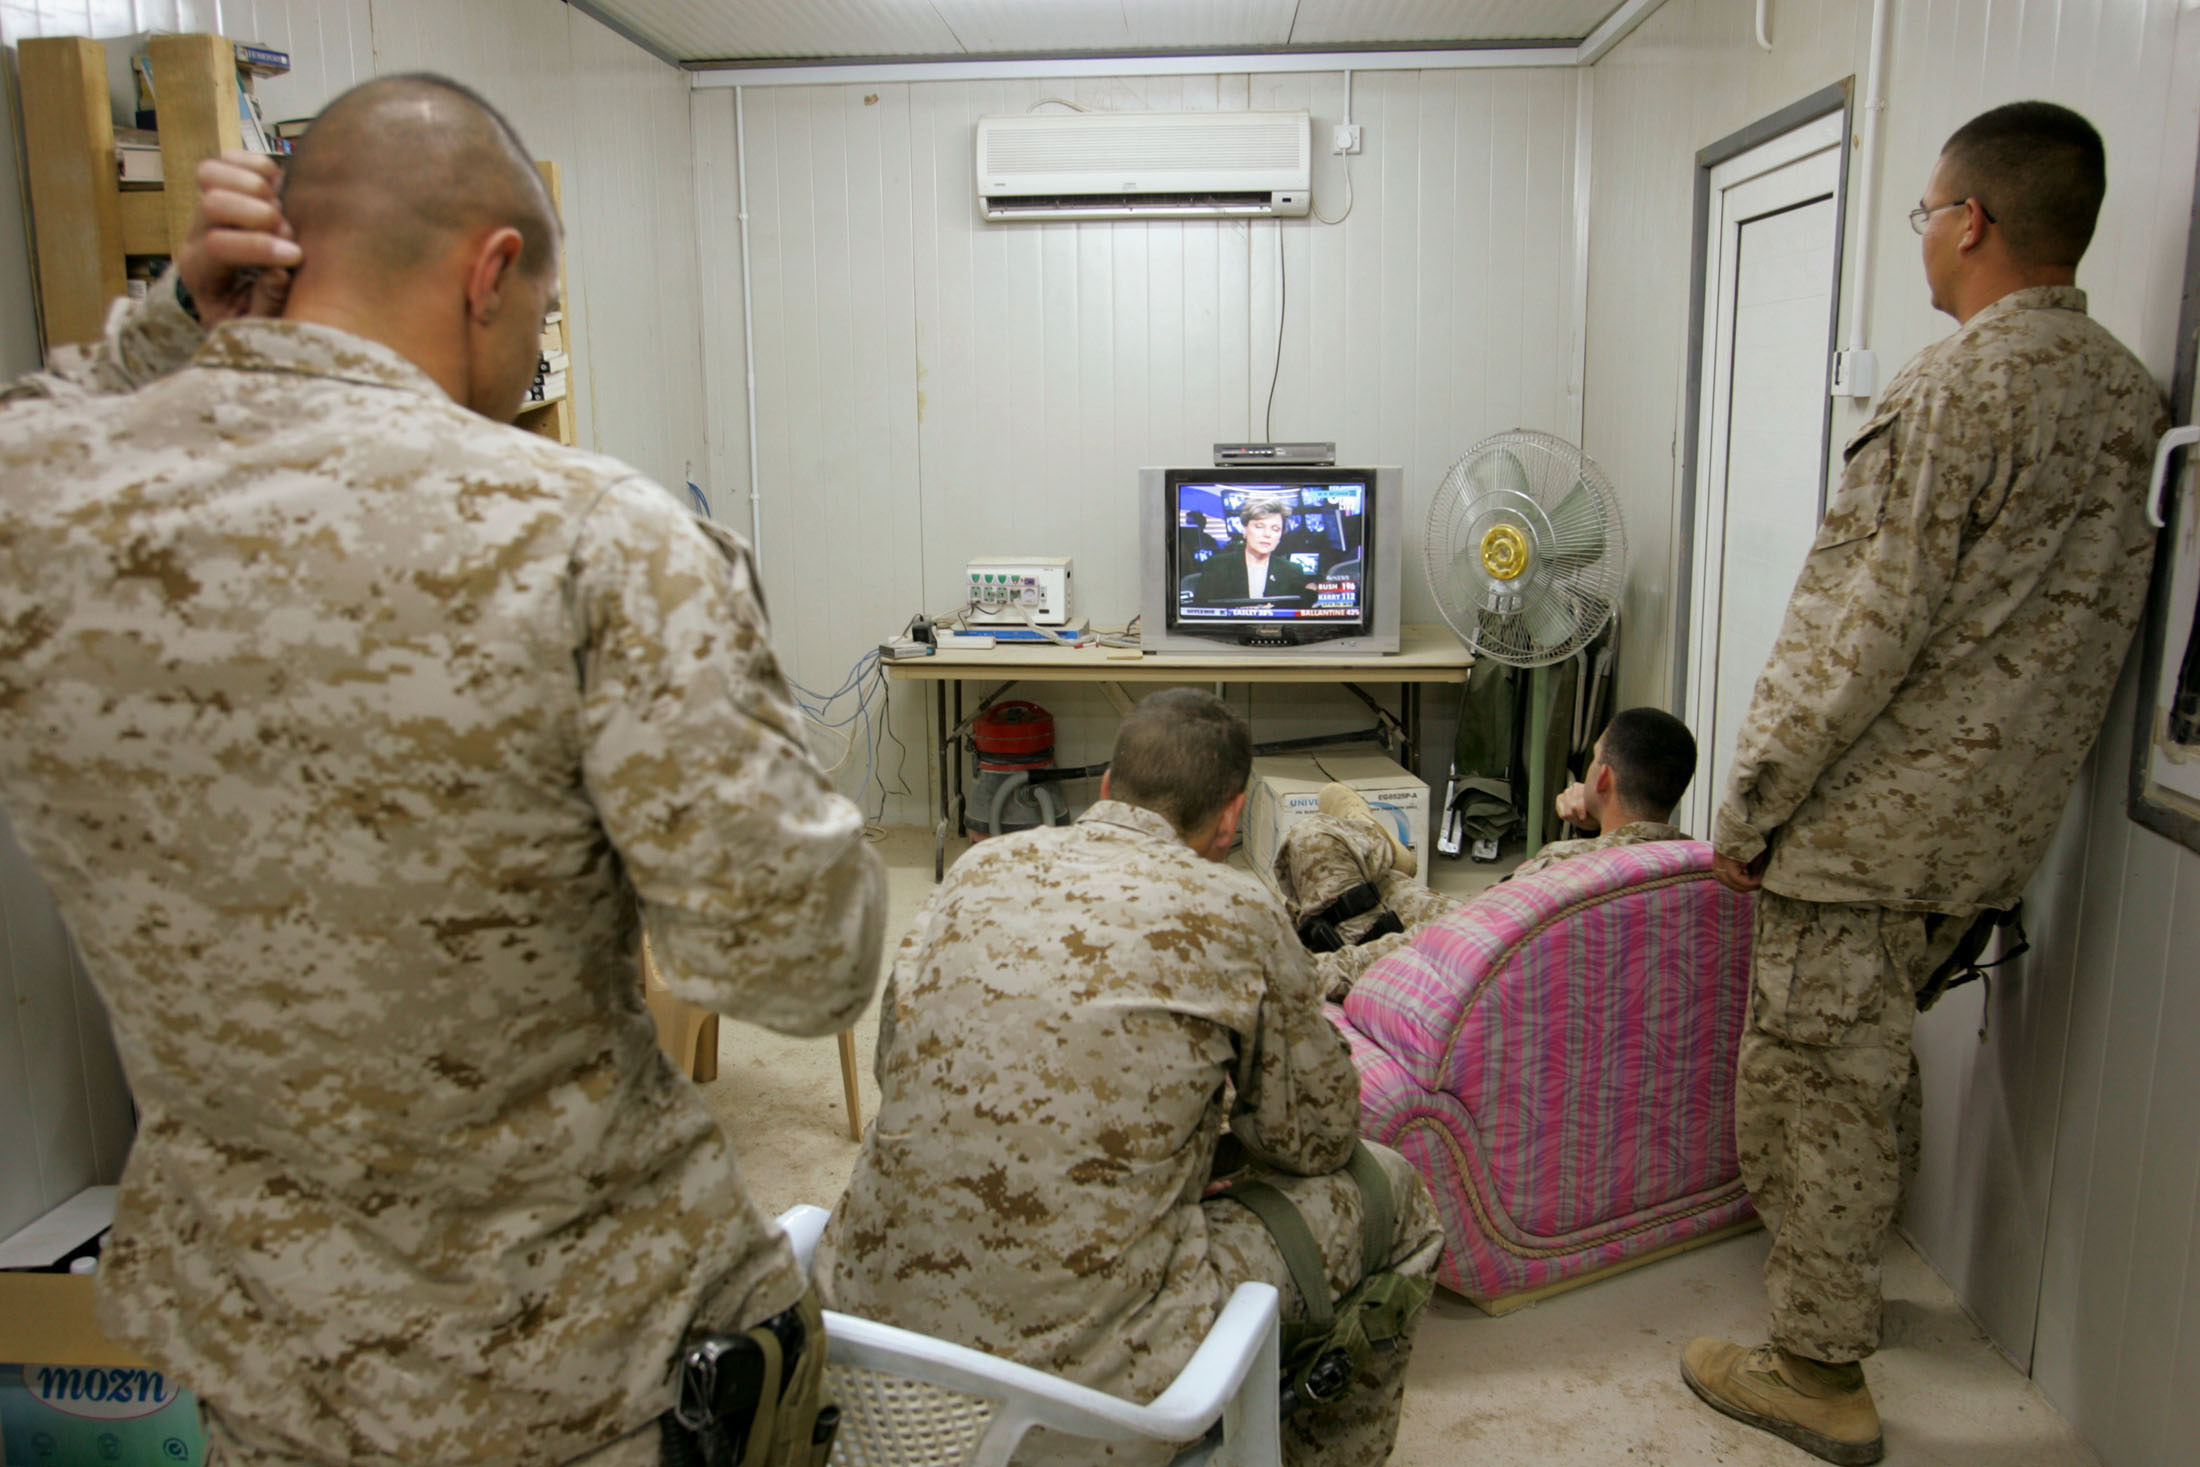 Men in camouflage watching a television with election results